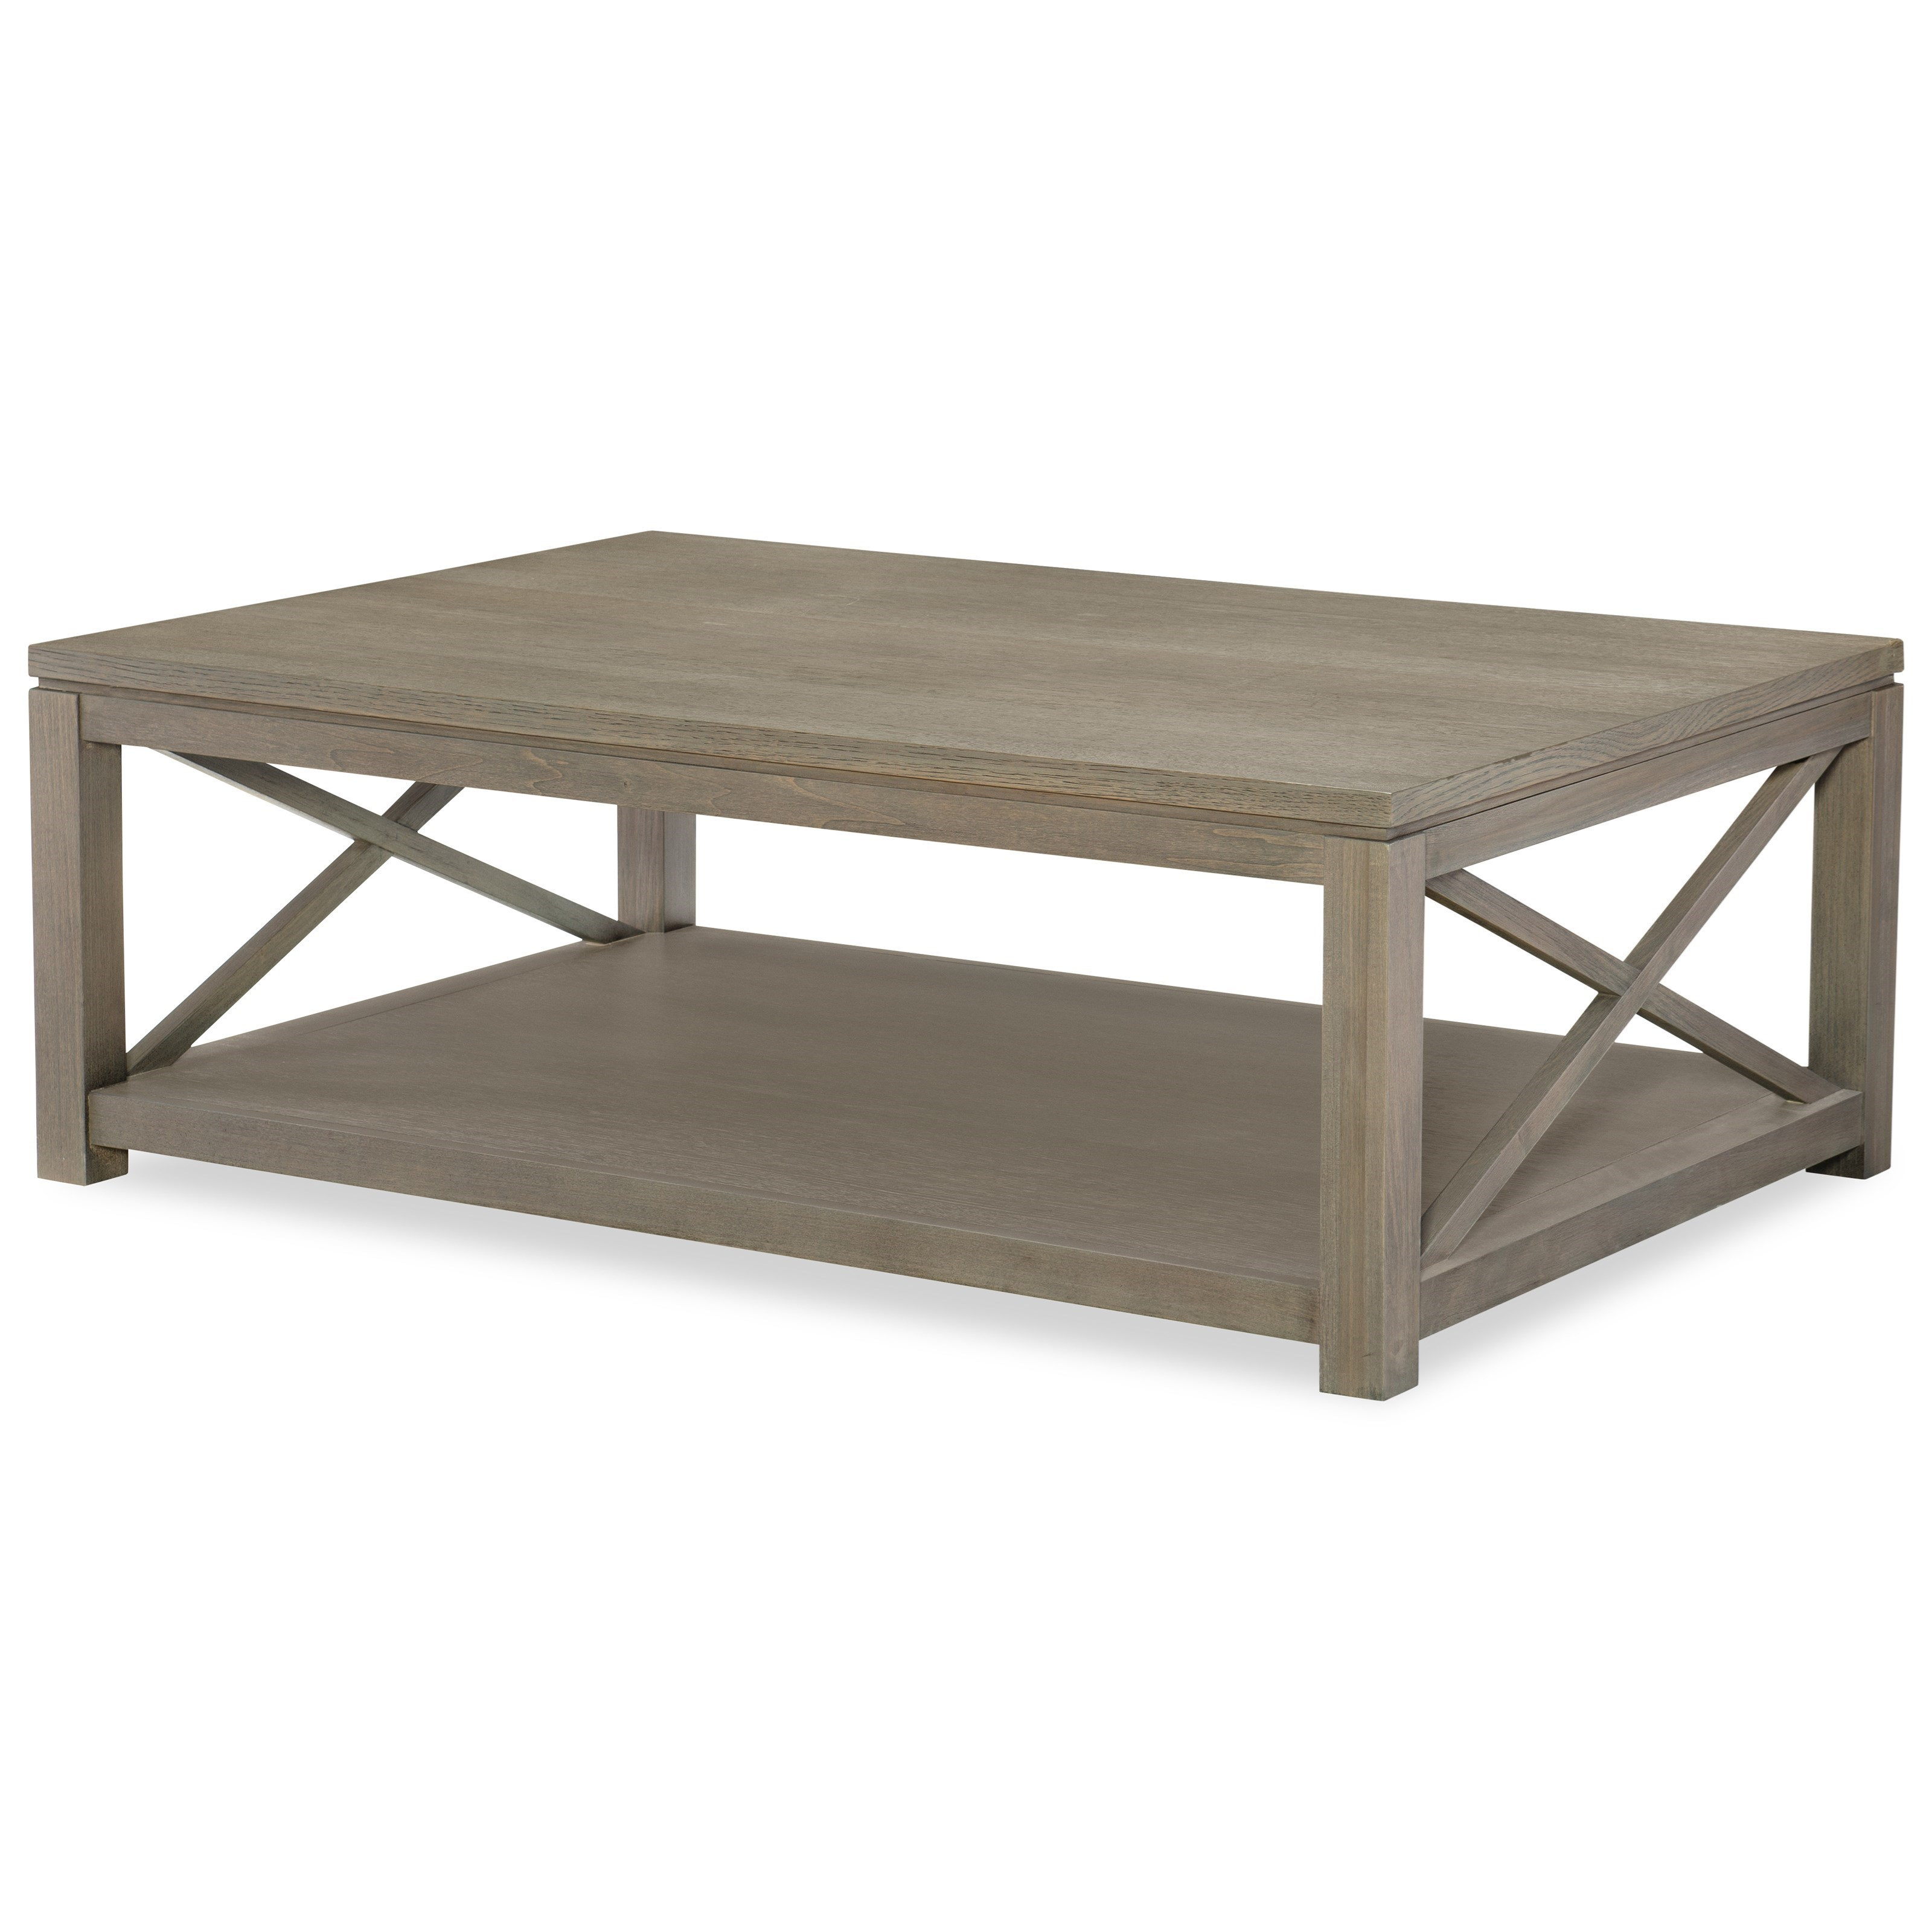 Rachael ray home high line rectangular cocktail table with for Cocktail tables high